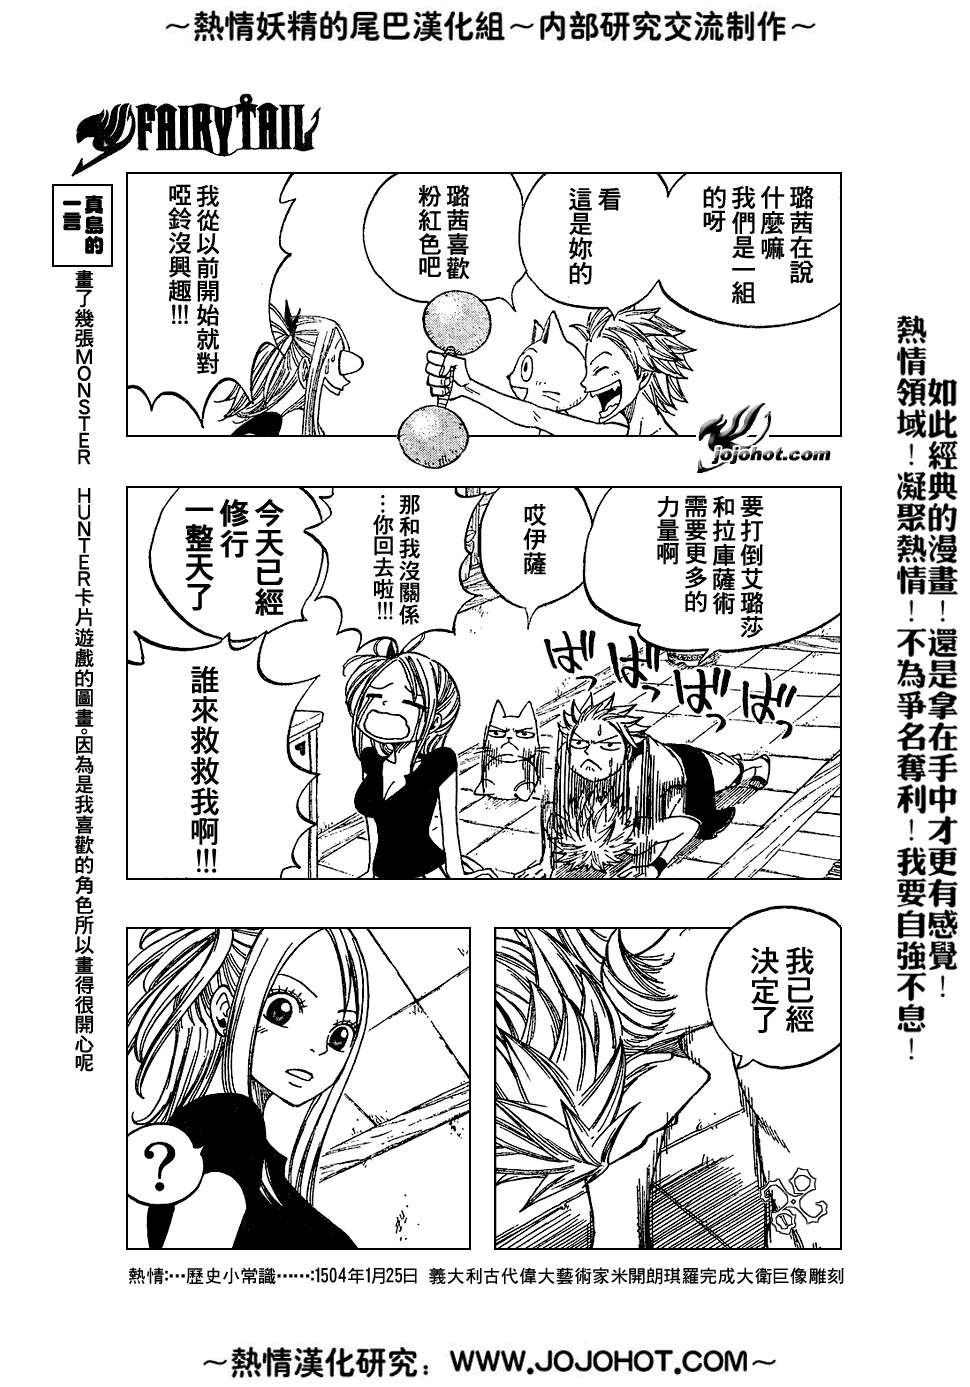 fairytail_24_19